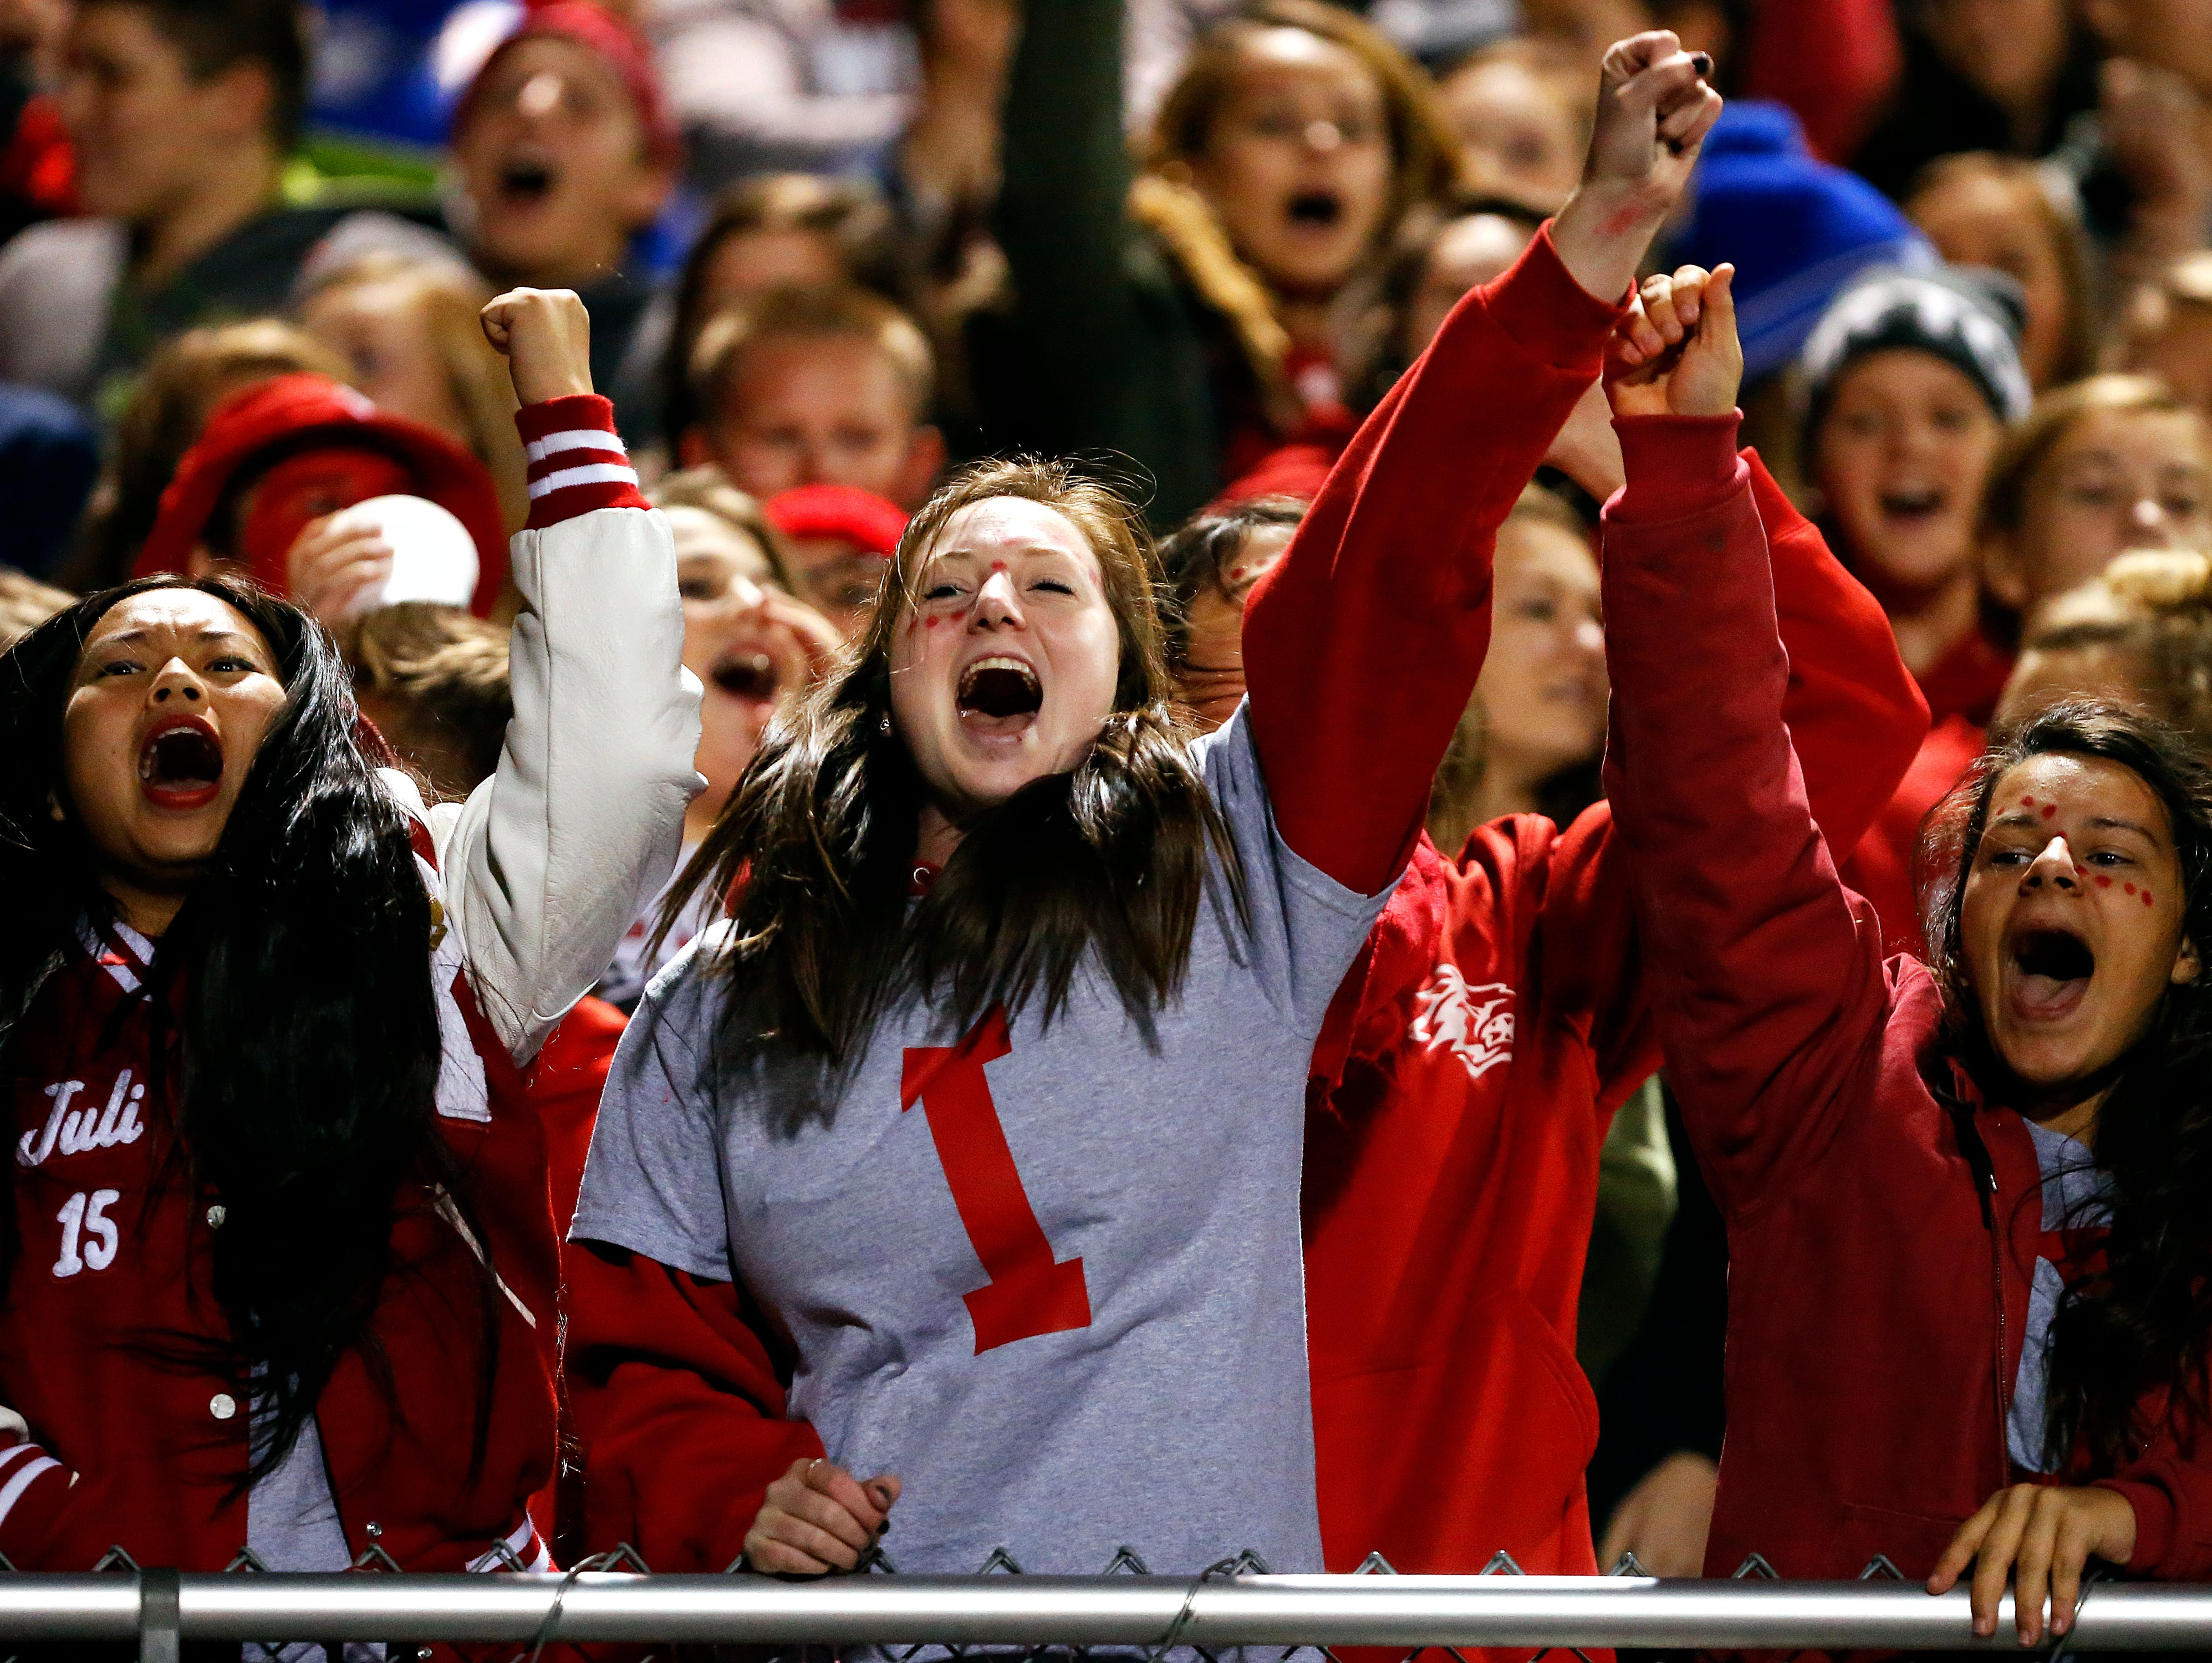 Reeds Spring High School fans cheer after a score during first quarter action of the Wolves' game against Central High School at Carl Langley Field in Reeds Spring, Mo. on Oct. 9, 2015. Reeds Spring won the game 35-24.